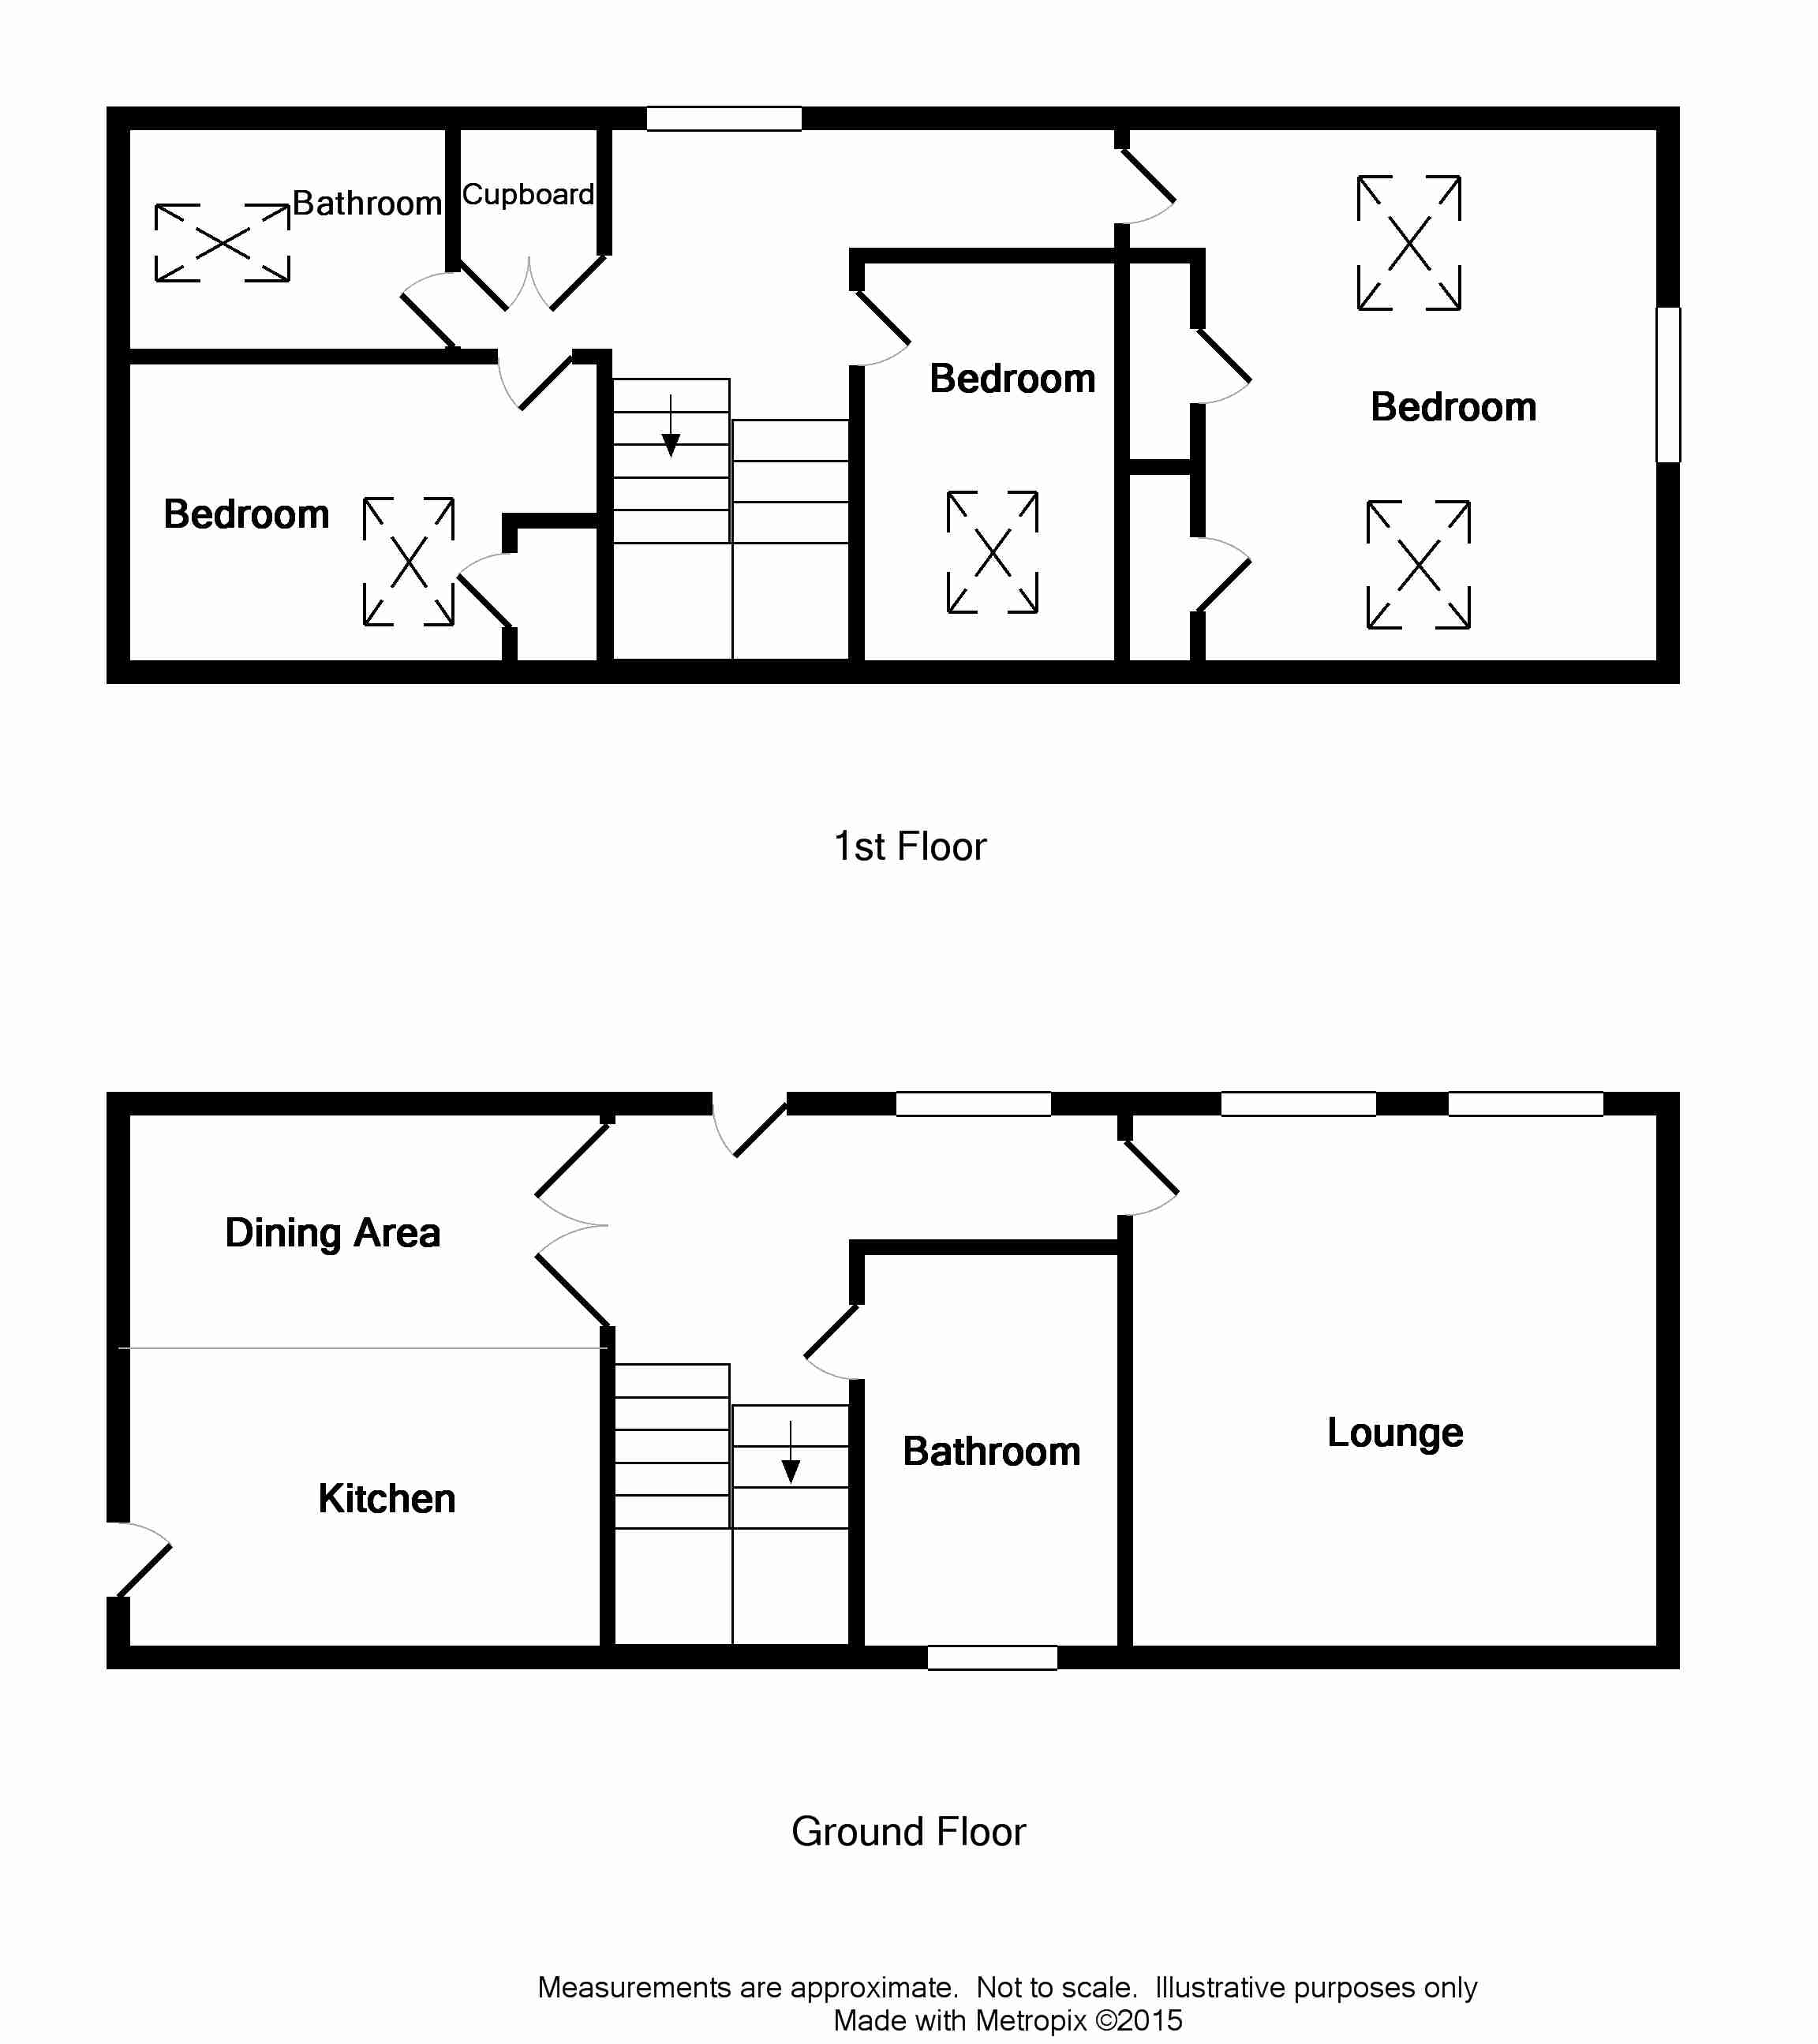 Photograph of Property 1 floorplan